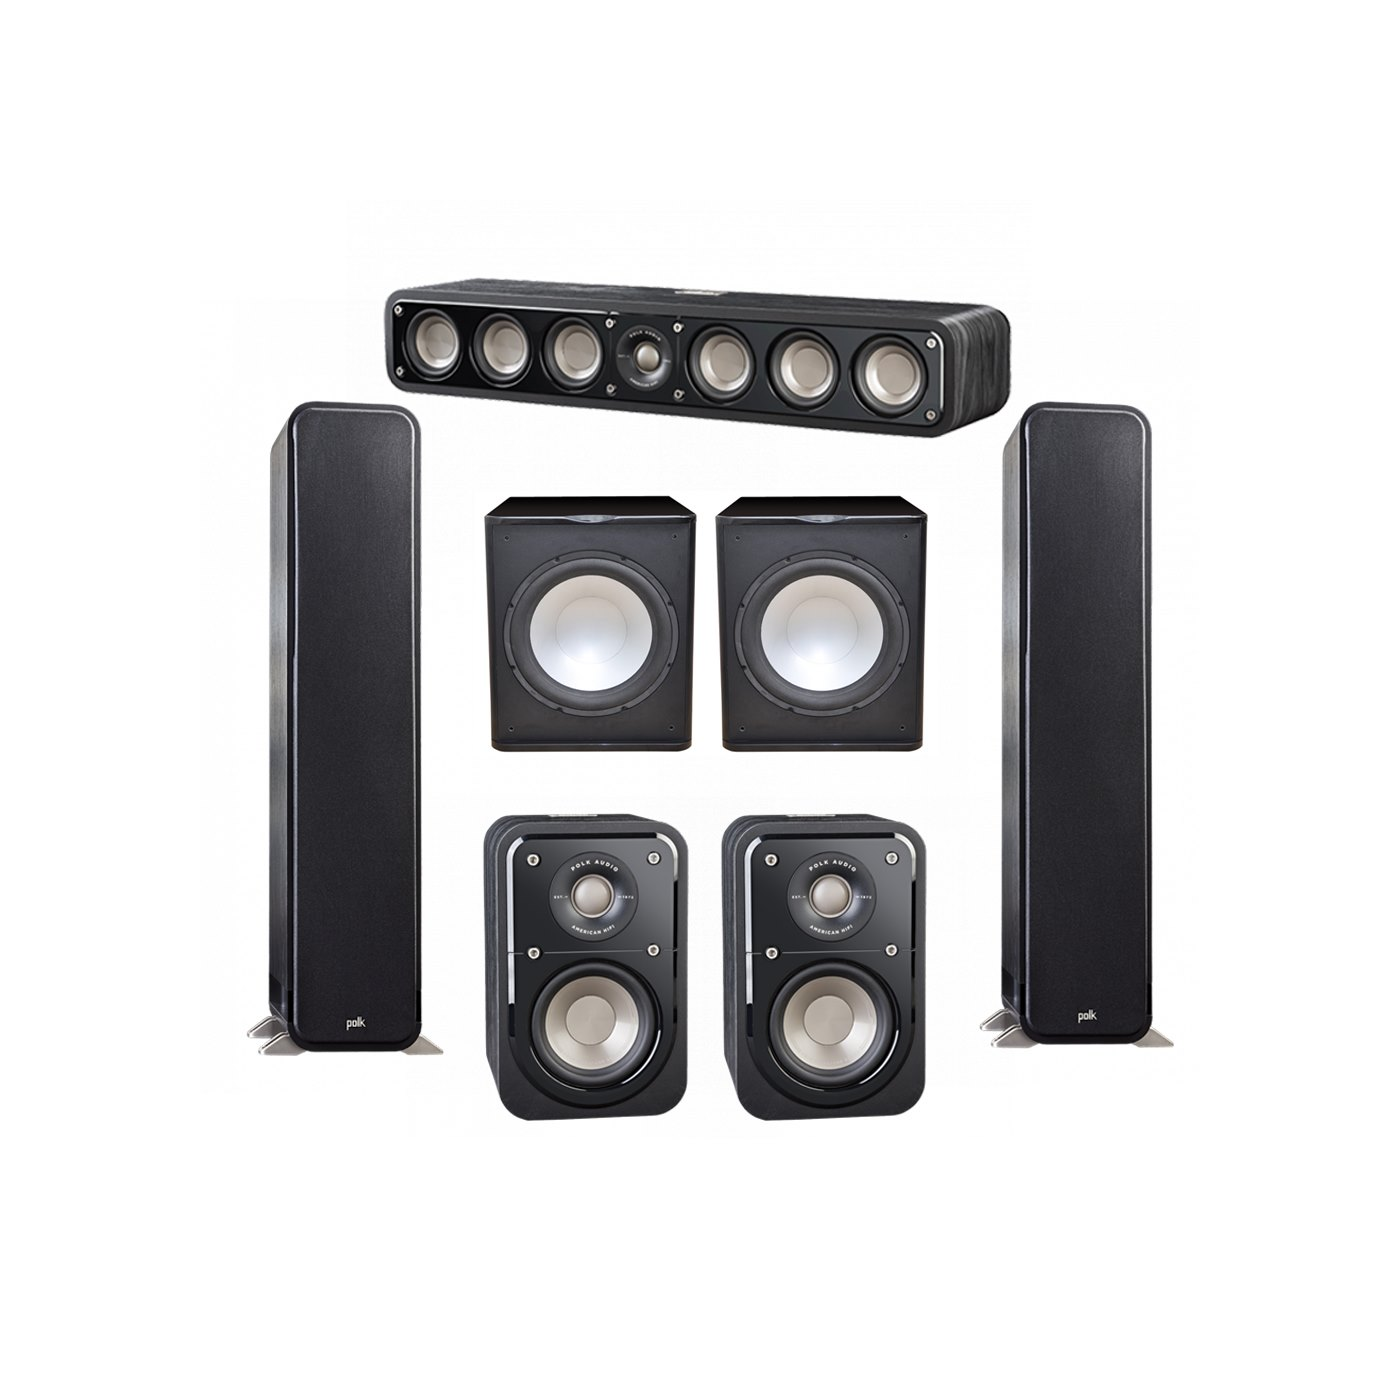 Polk Audio Signature 5.2 System with 2 S55 Tower Speaker, 1 Polk S35 Center Speaker, 2 Polk S10 Surround Speaker, 2 Premier Acoustic PA-150 Powered Subwoofer